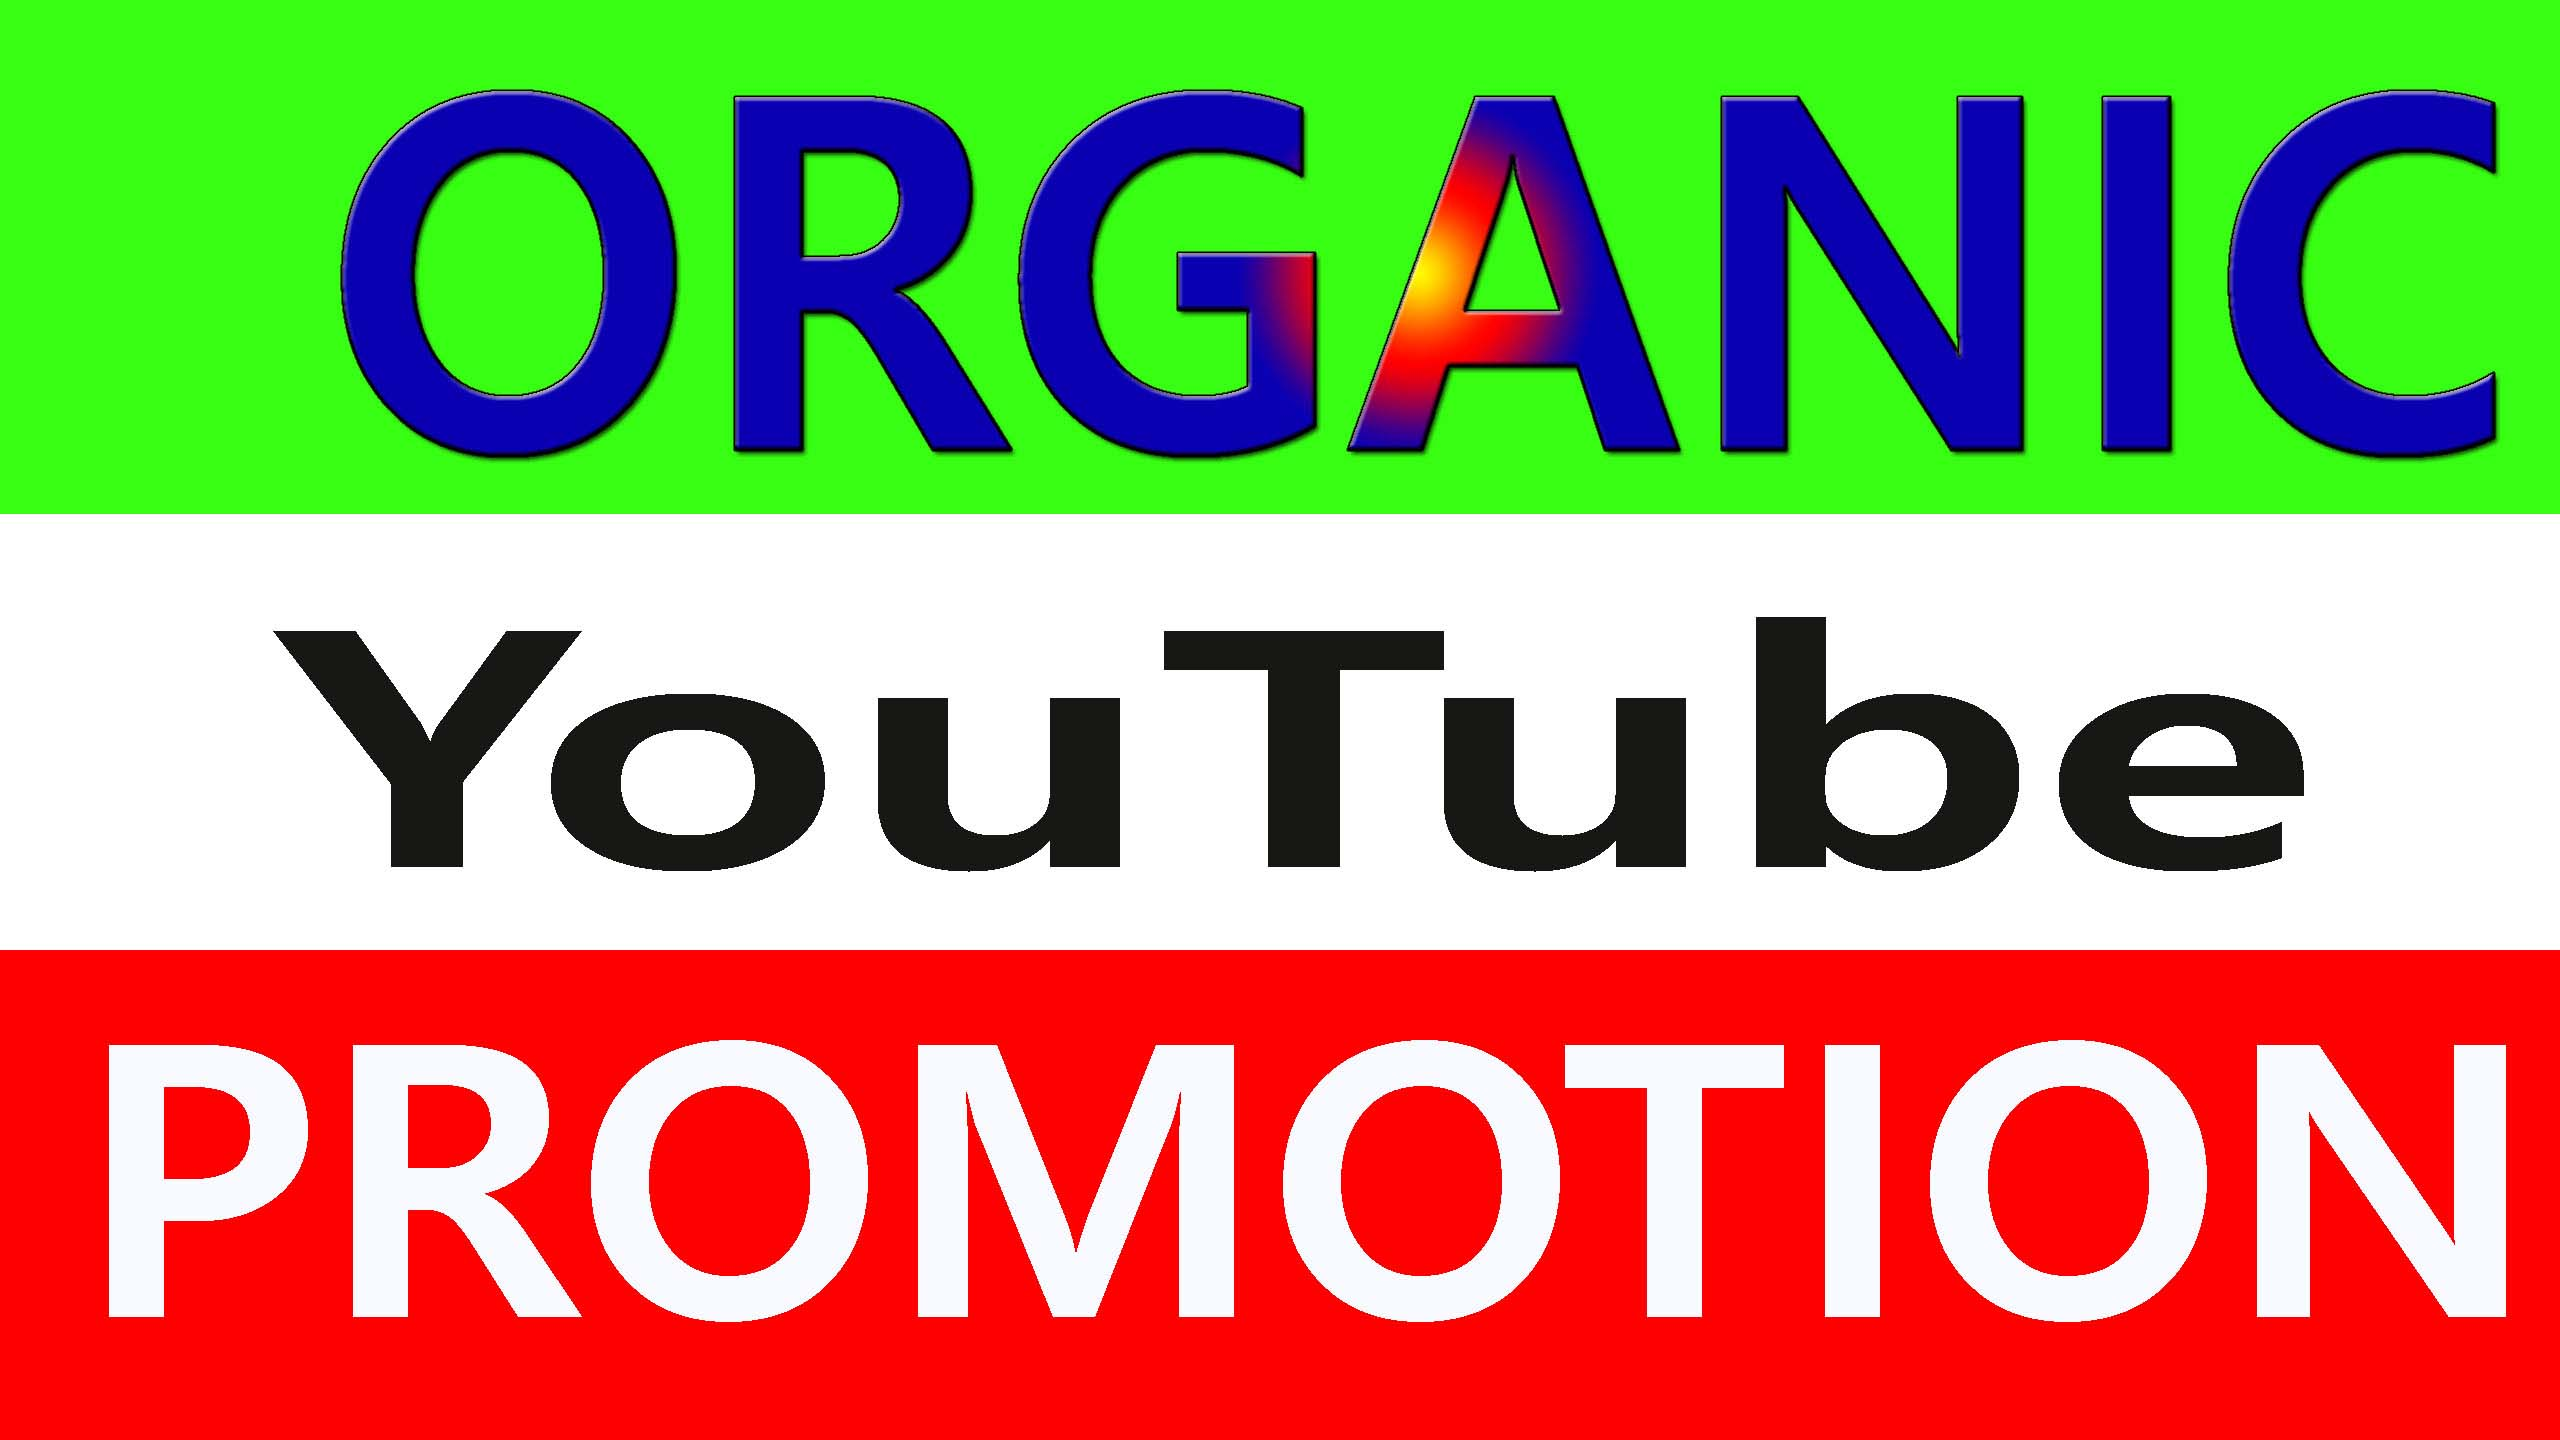 Do Fast YouTube Video And Chanel Promotion